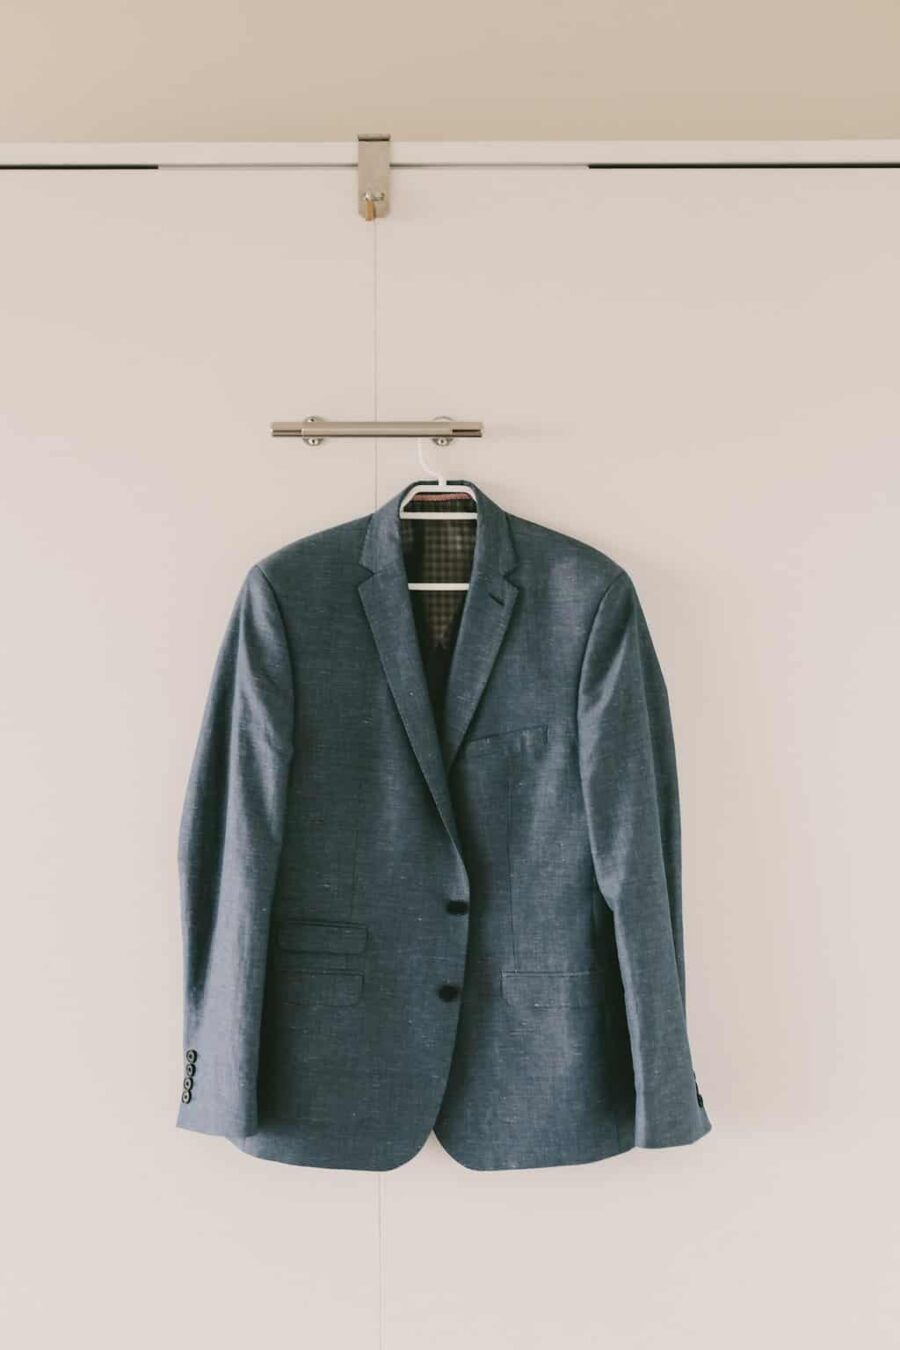 grey-blue blazer